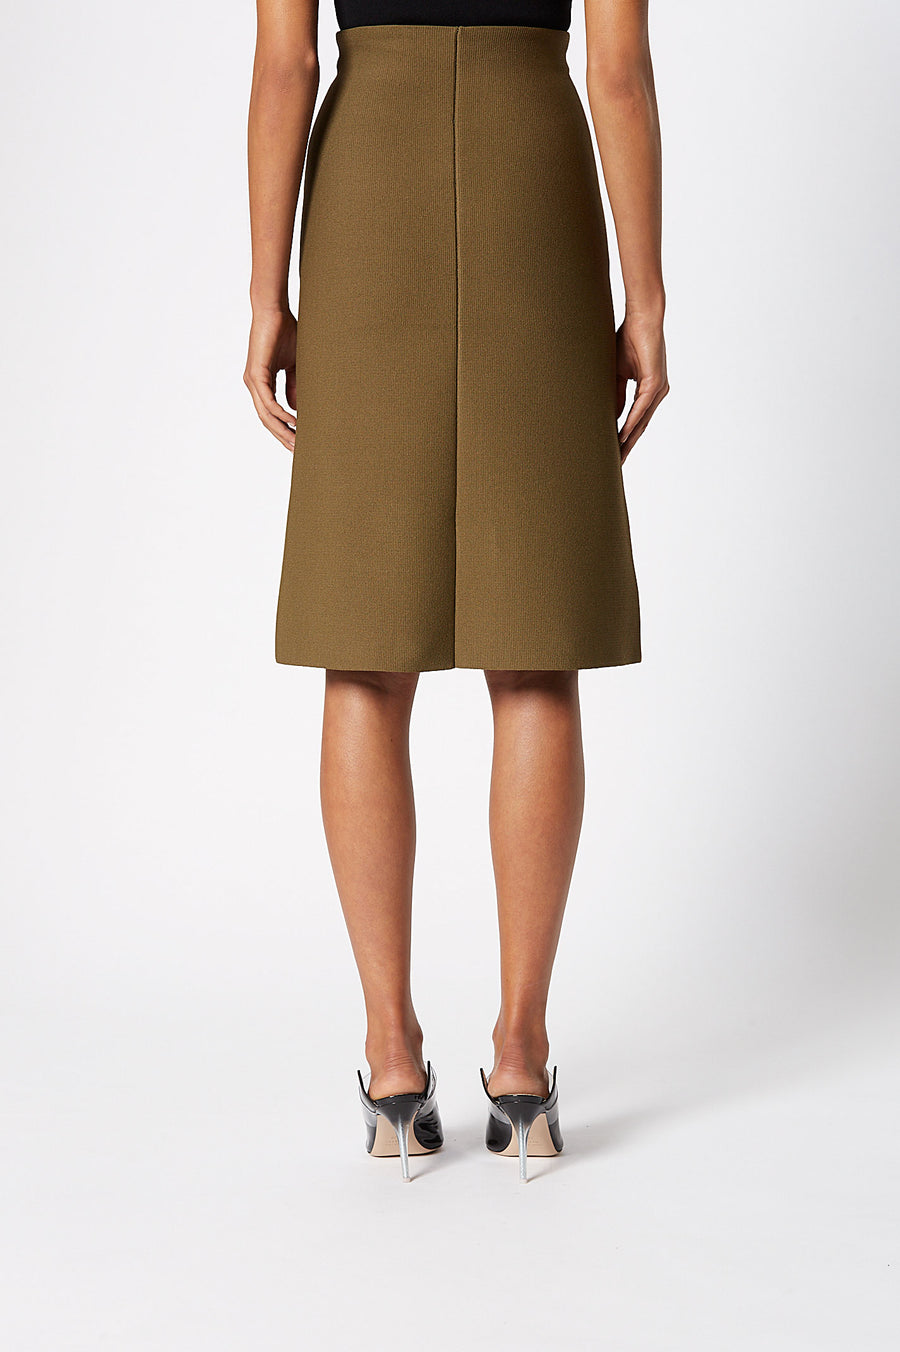 CREPE KNIT A-LINE SKIRT MILITARY